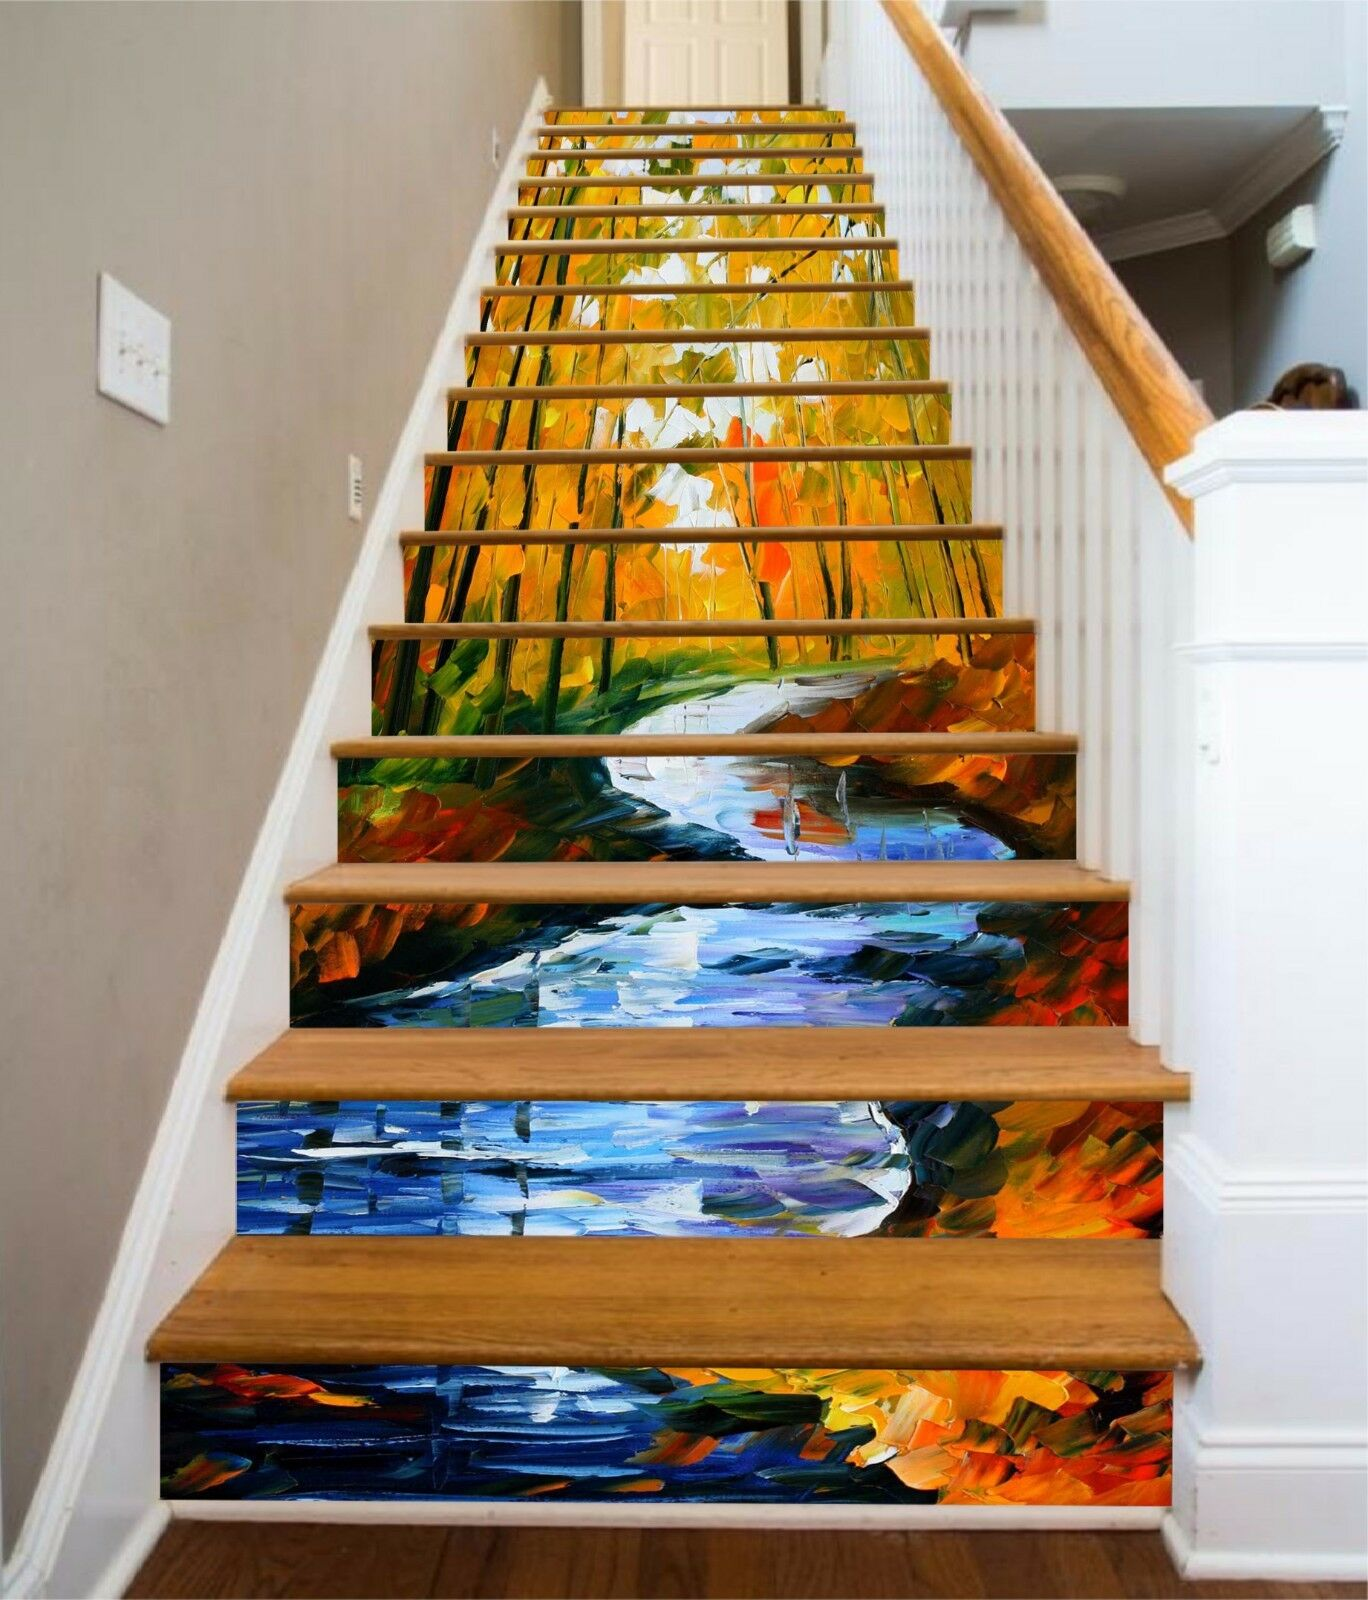 3D River Paint 231 Stairs Risers Decoration Photo Mural Vinyl Decal Wallpaper US